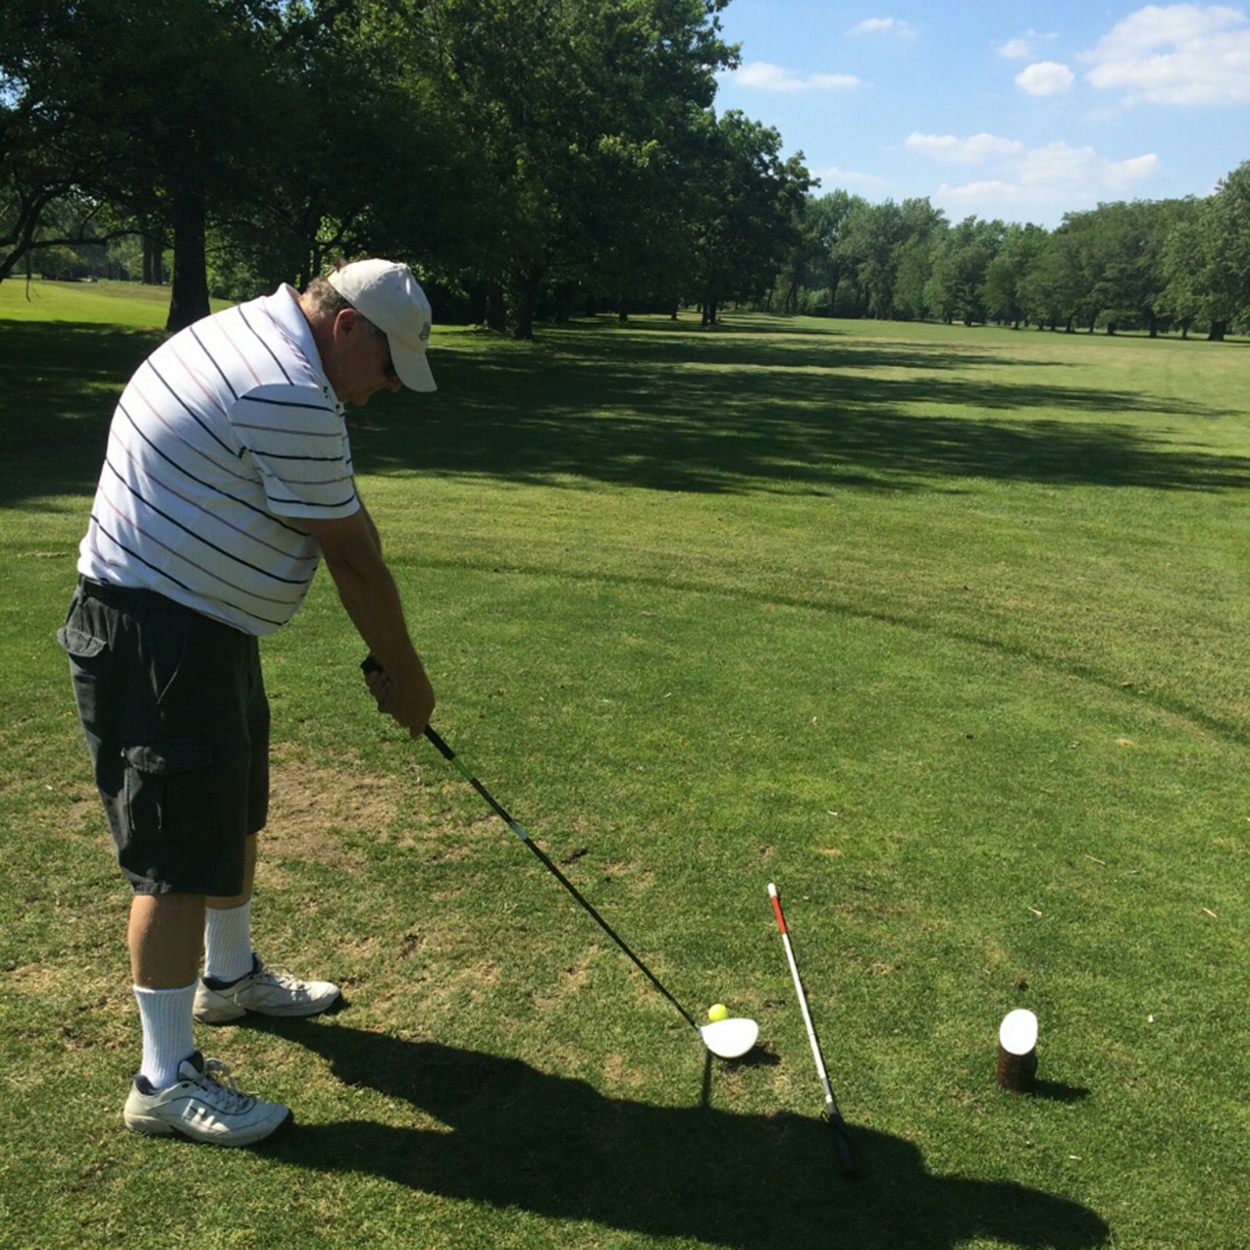 Chuck uses a golf club to line up his ball to the hole